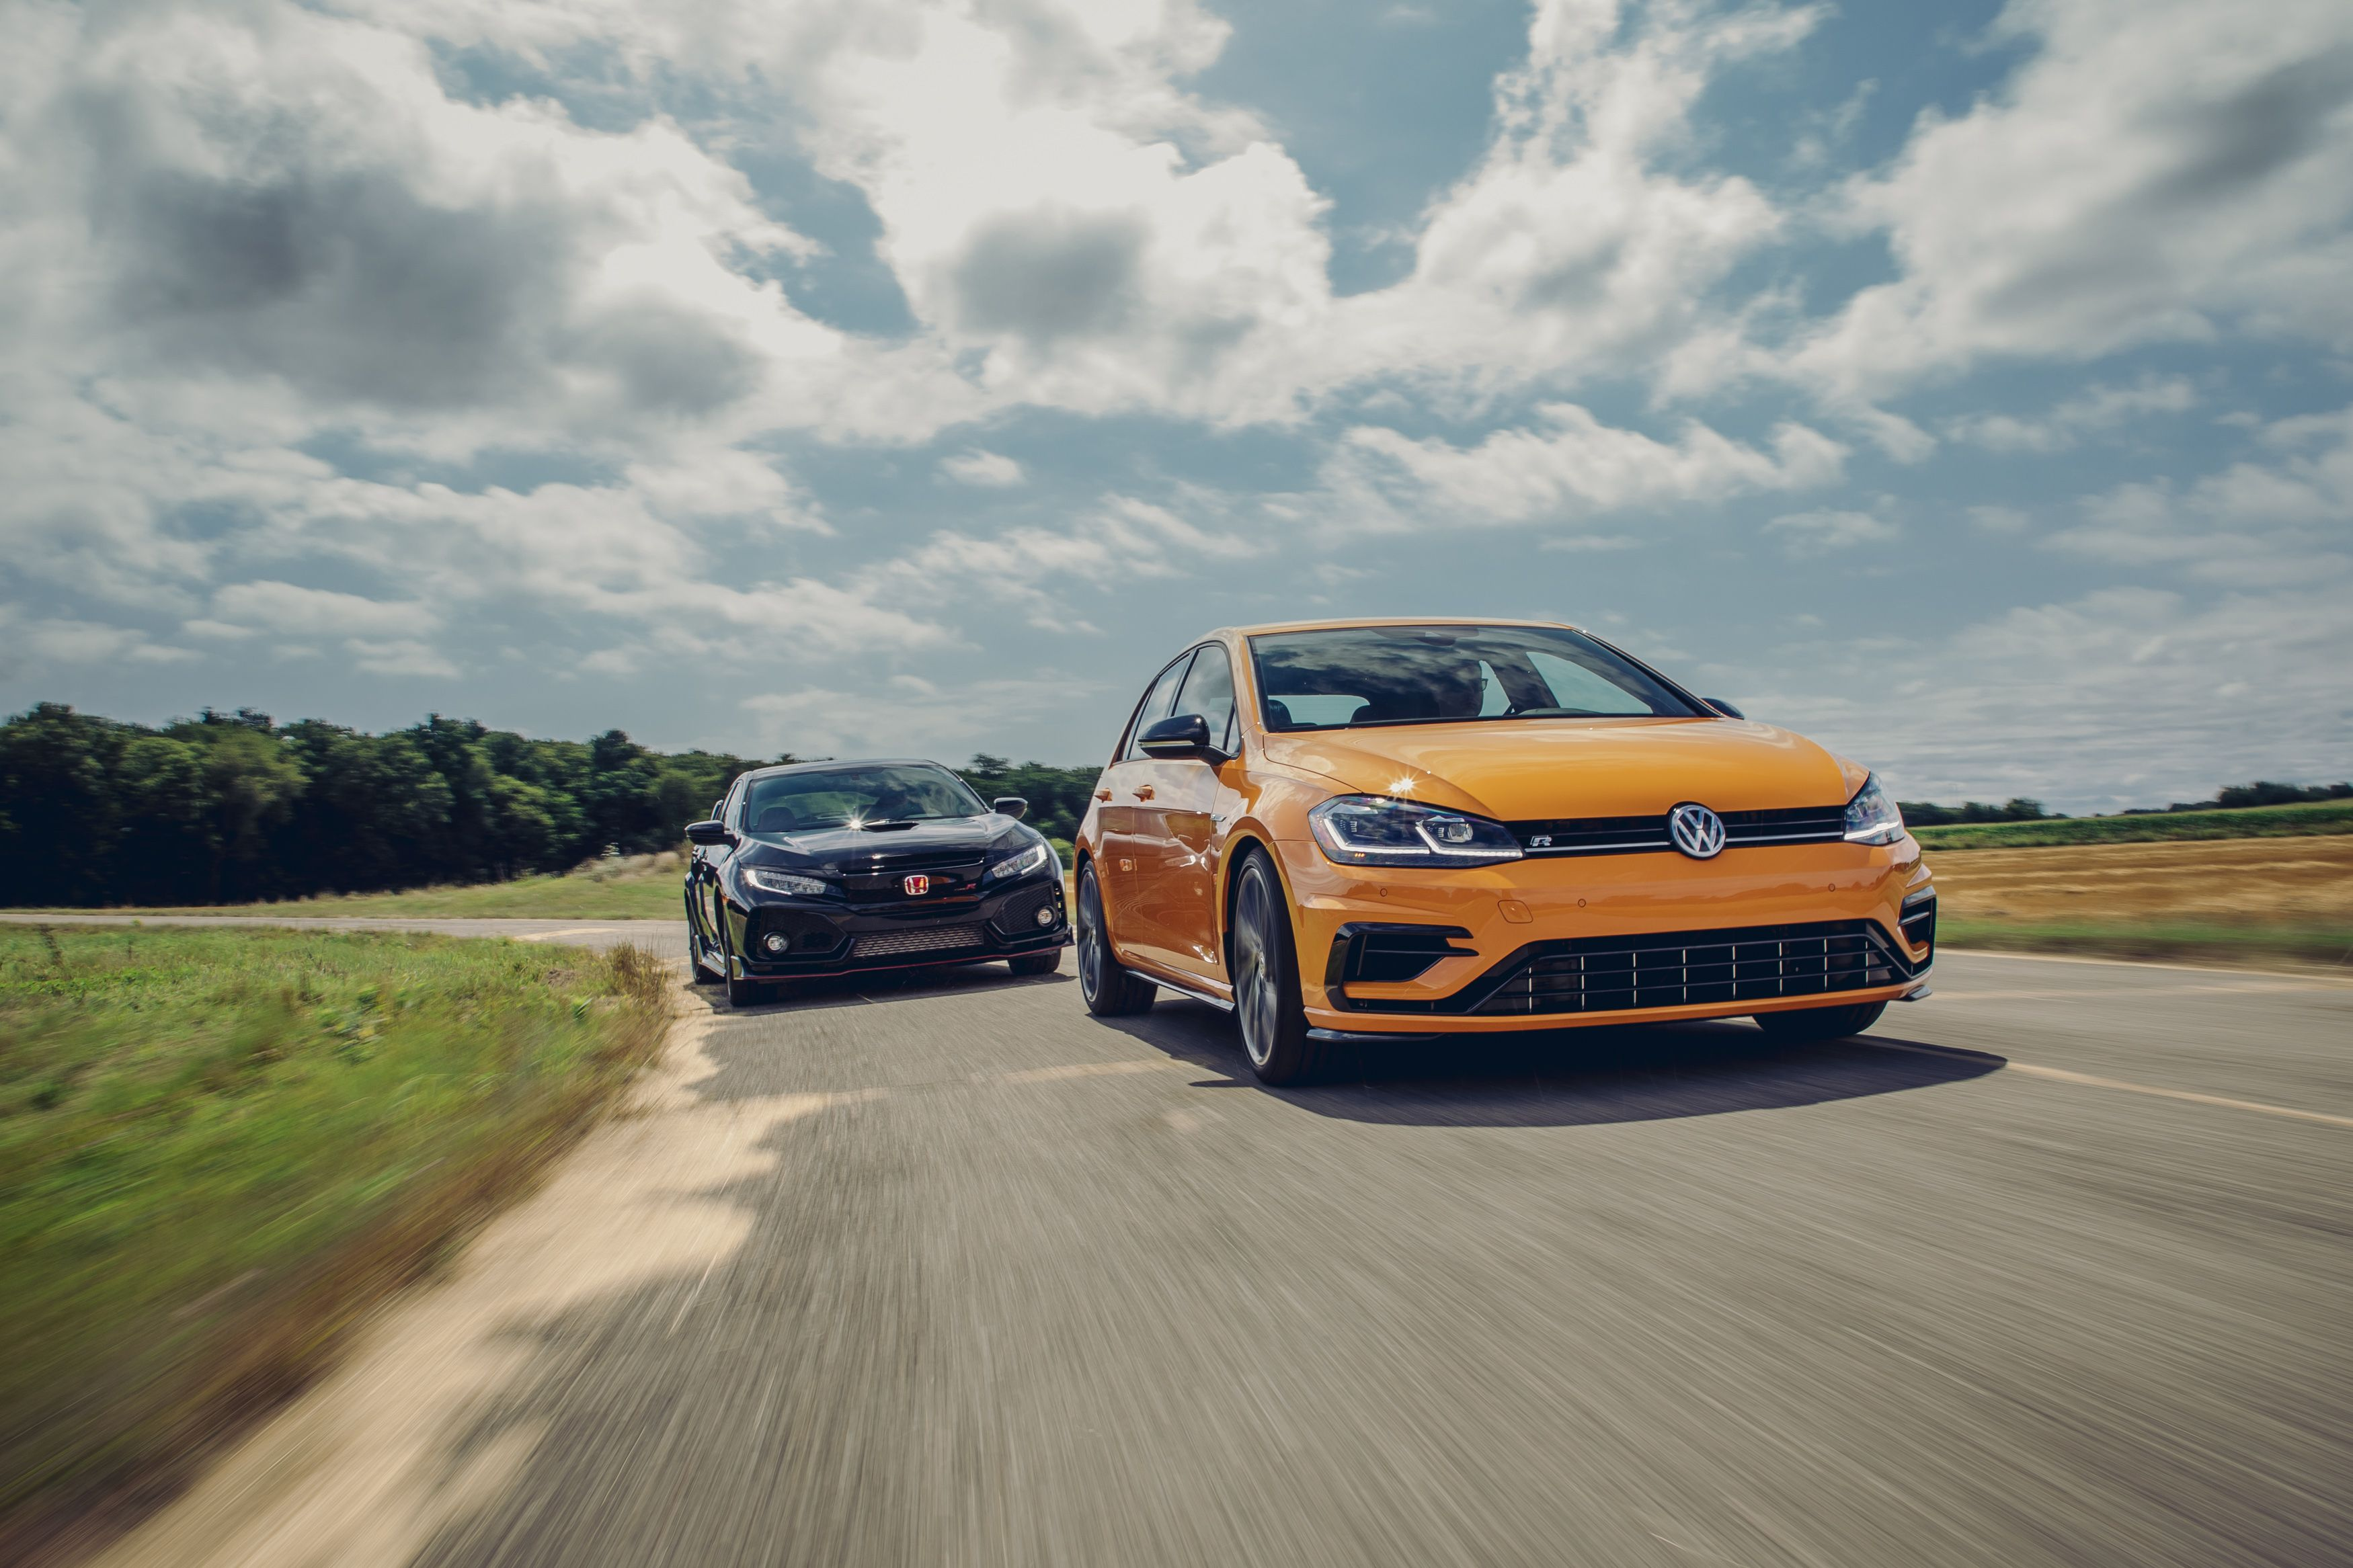 2019 Honda Civic Type R vs. 2019 VW Golf R: Which is the Hottest Hatch?